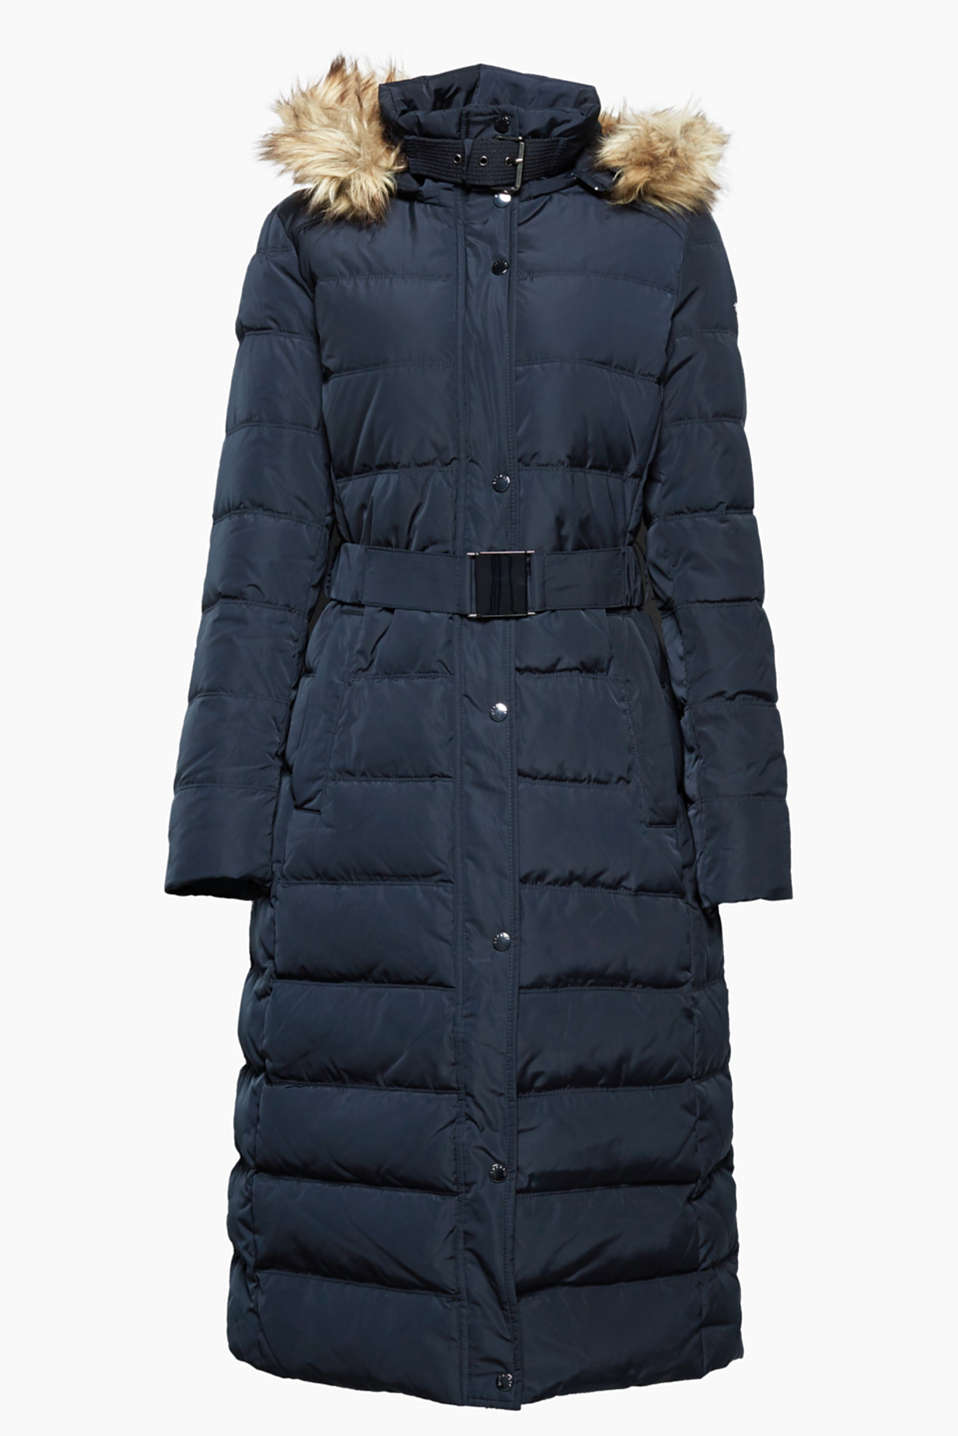 In a trendy maxi length, this fitted, quilted coat with premium down and feather filling is wonderfully warm for the winter.